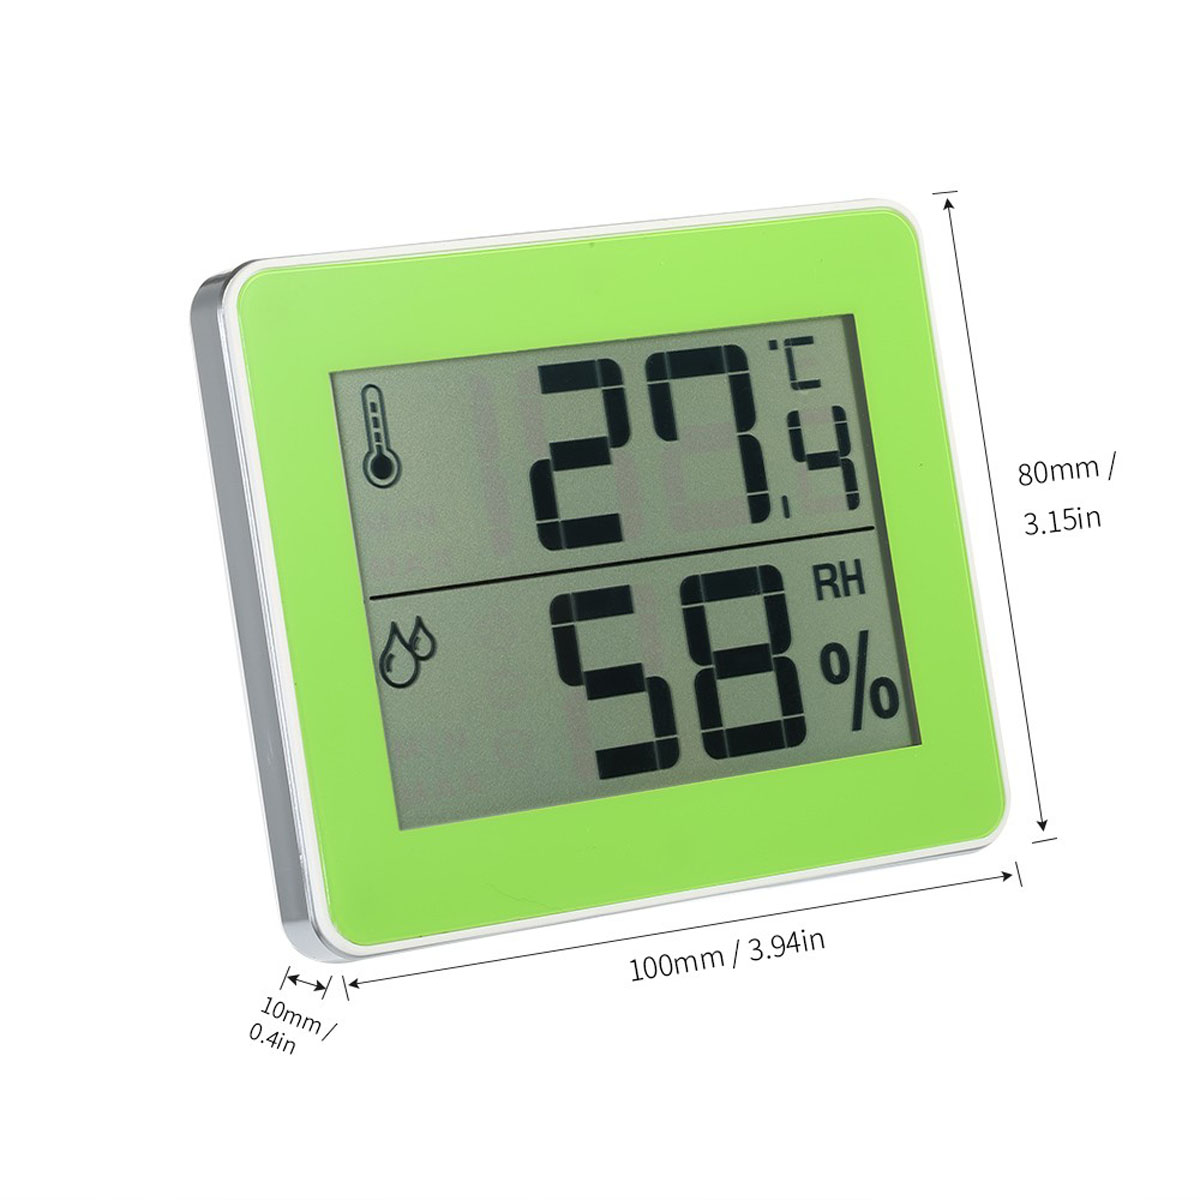 Smart LED Diaplay Screen Hygrothermograph Digital Thermometer High Precision Indoor Humidity Meter green_TS-E01-G